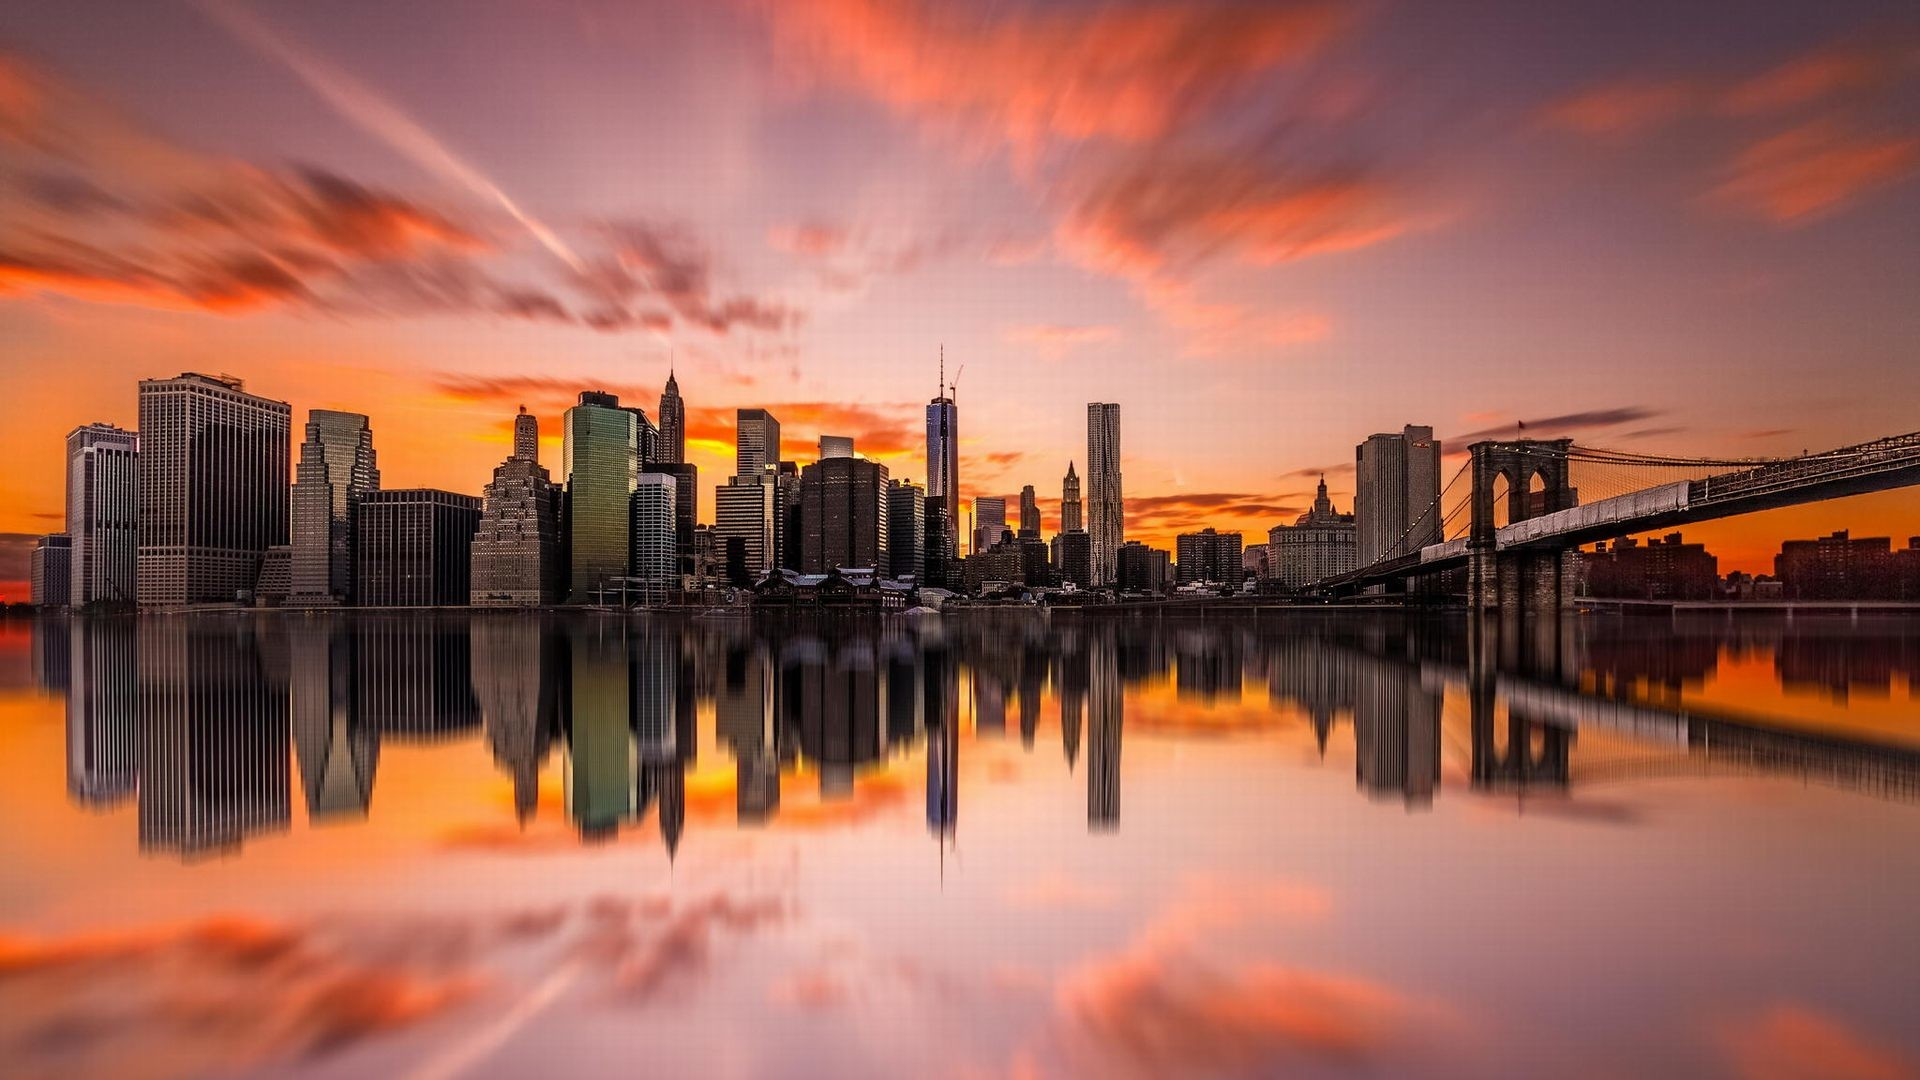 New York City Hd Wallpaper 75 Images